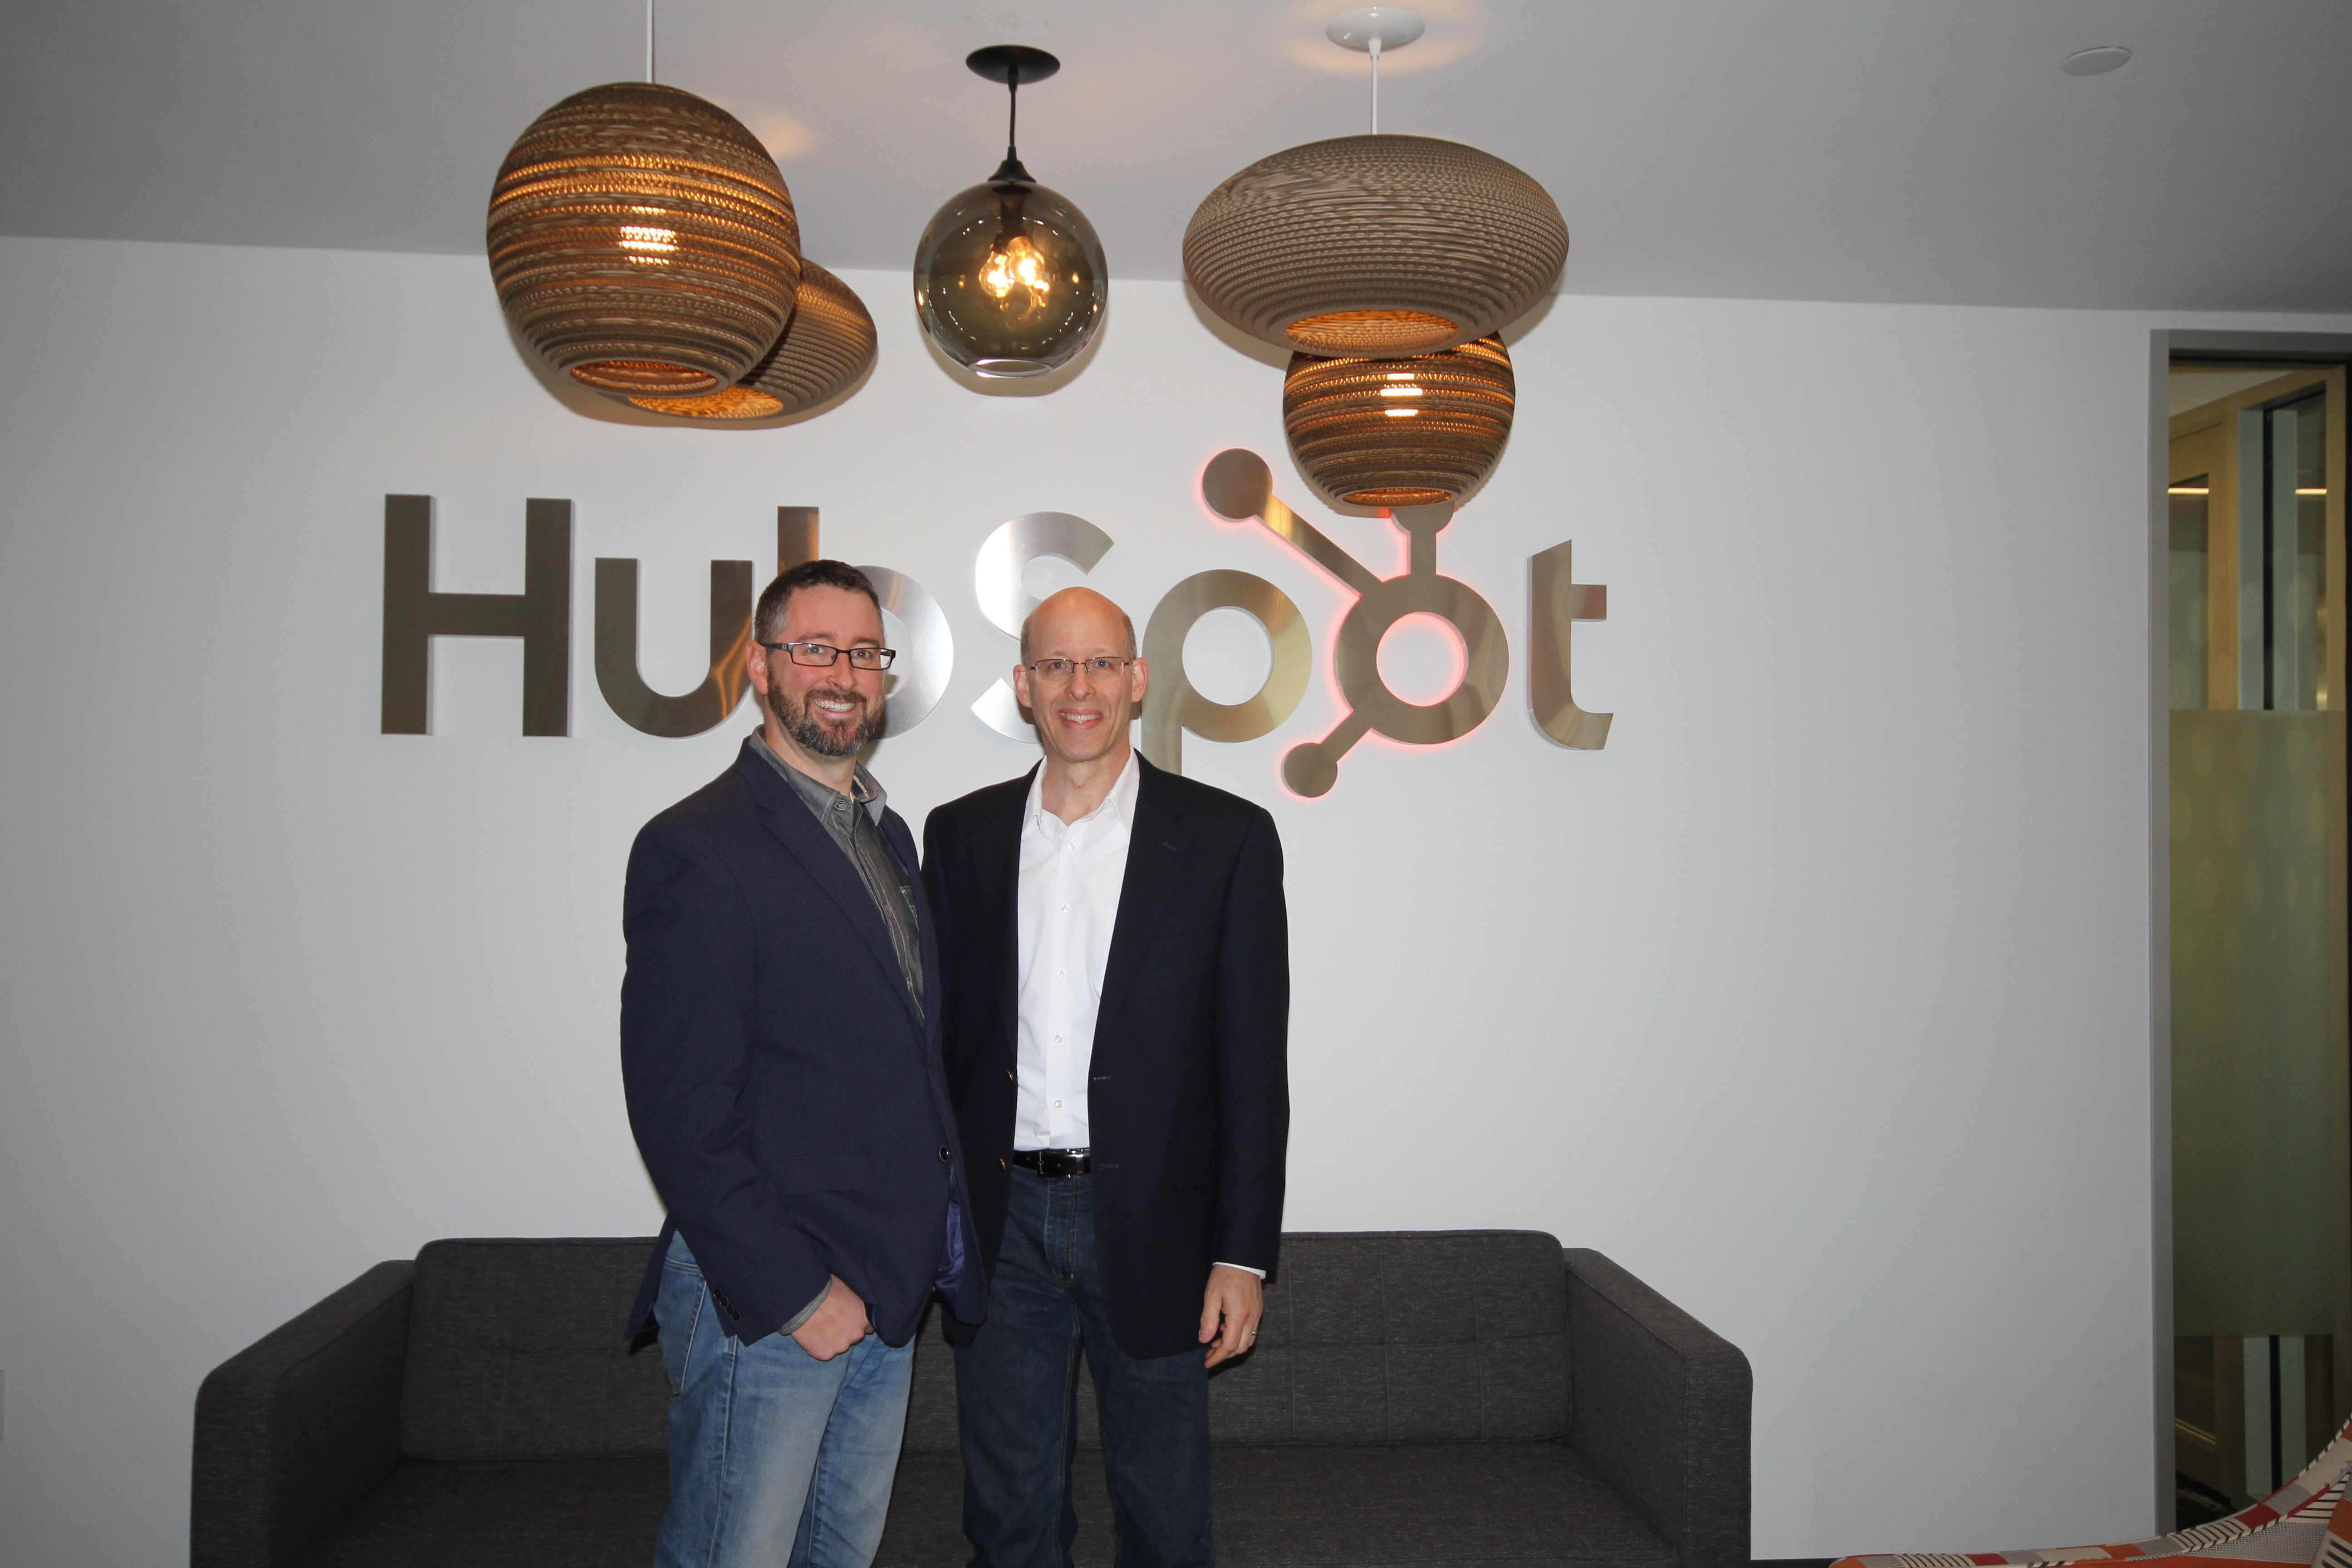 Greg_and_Eric_at_Hubspot.jpg